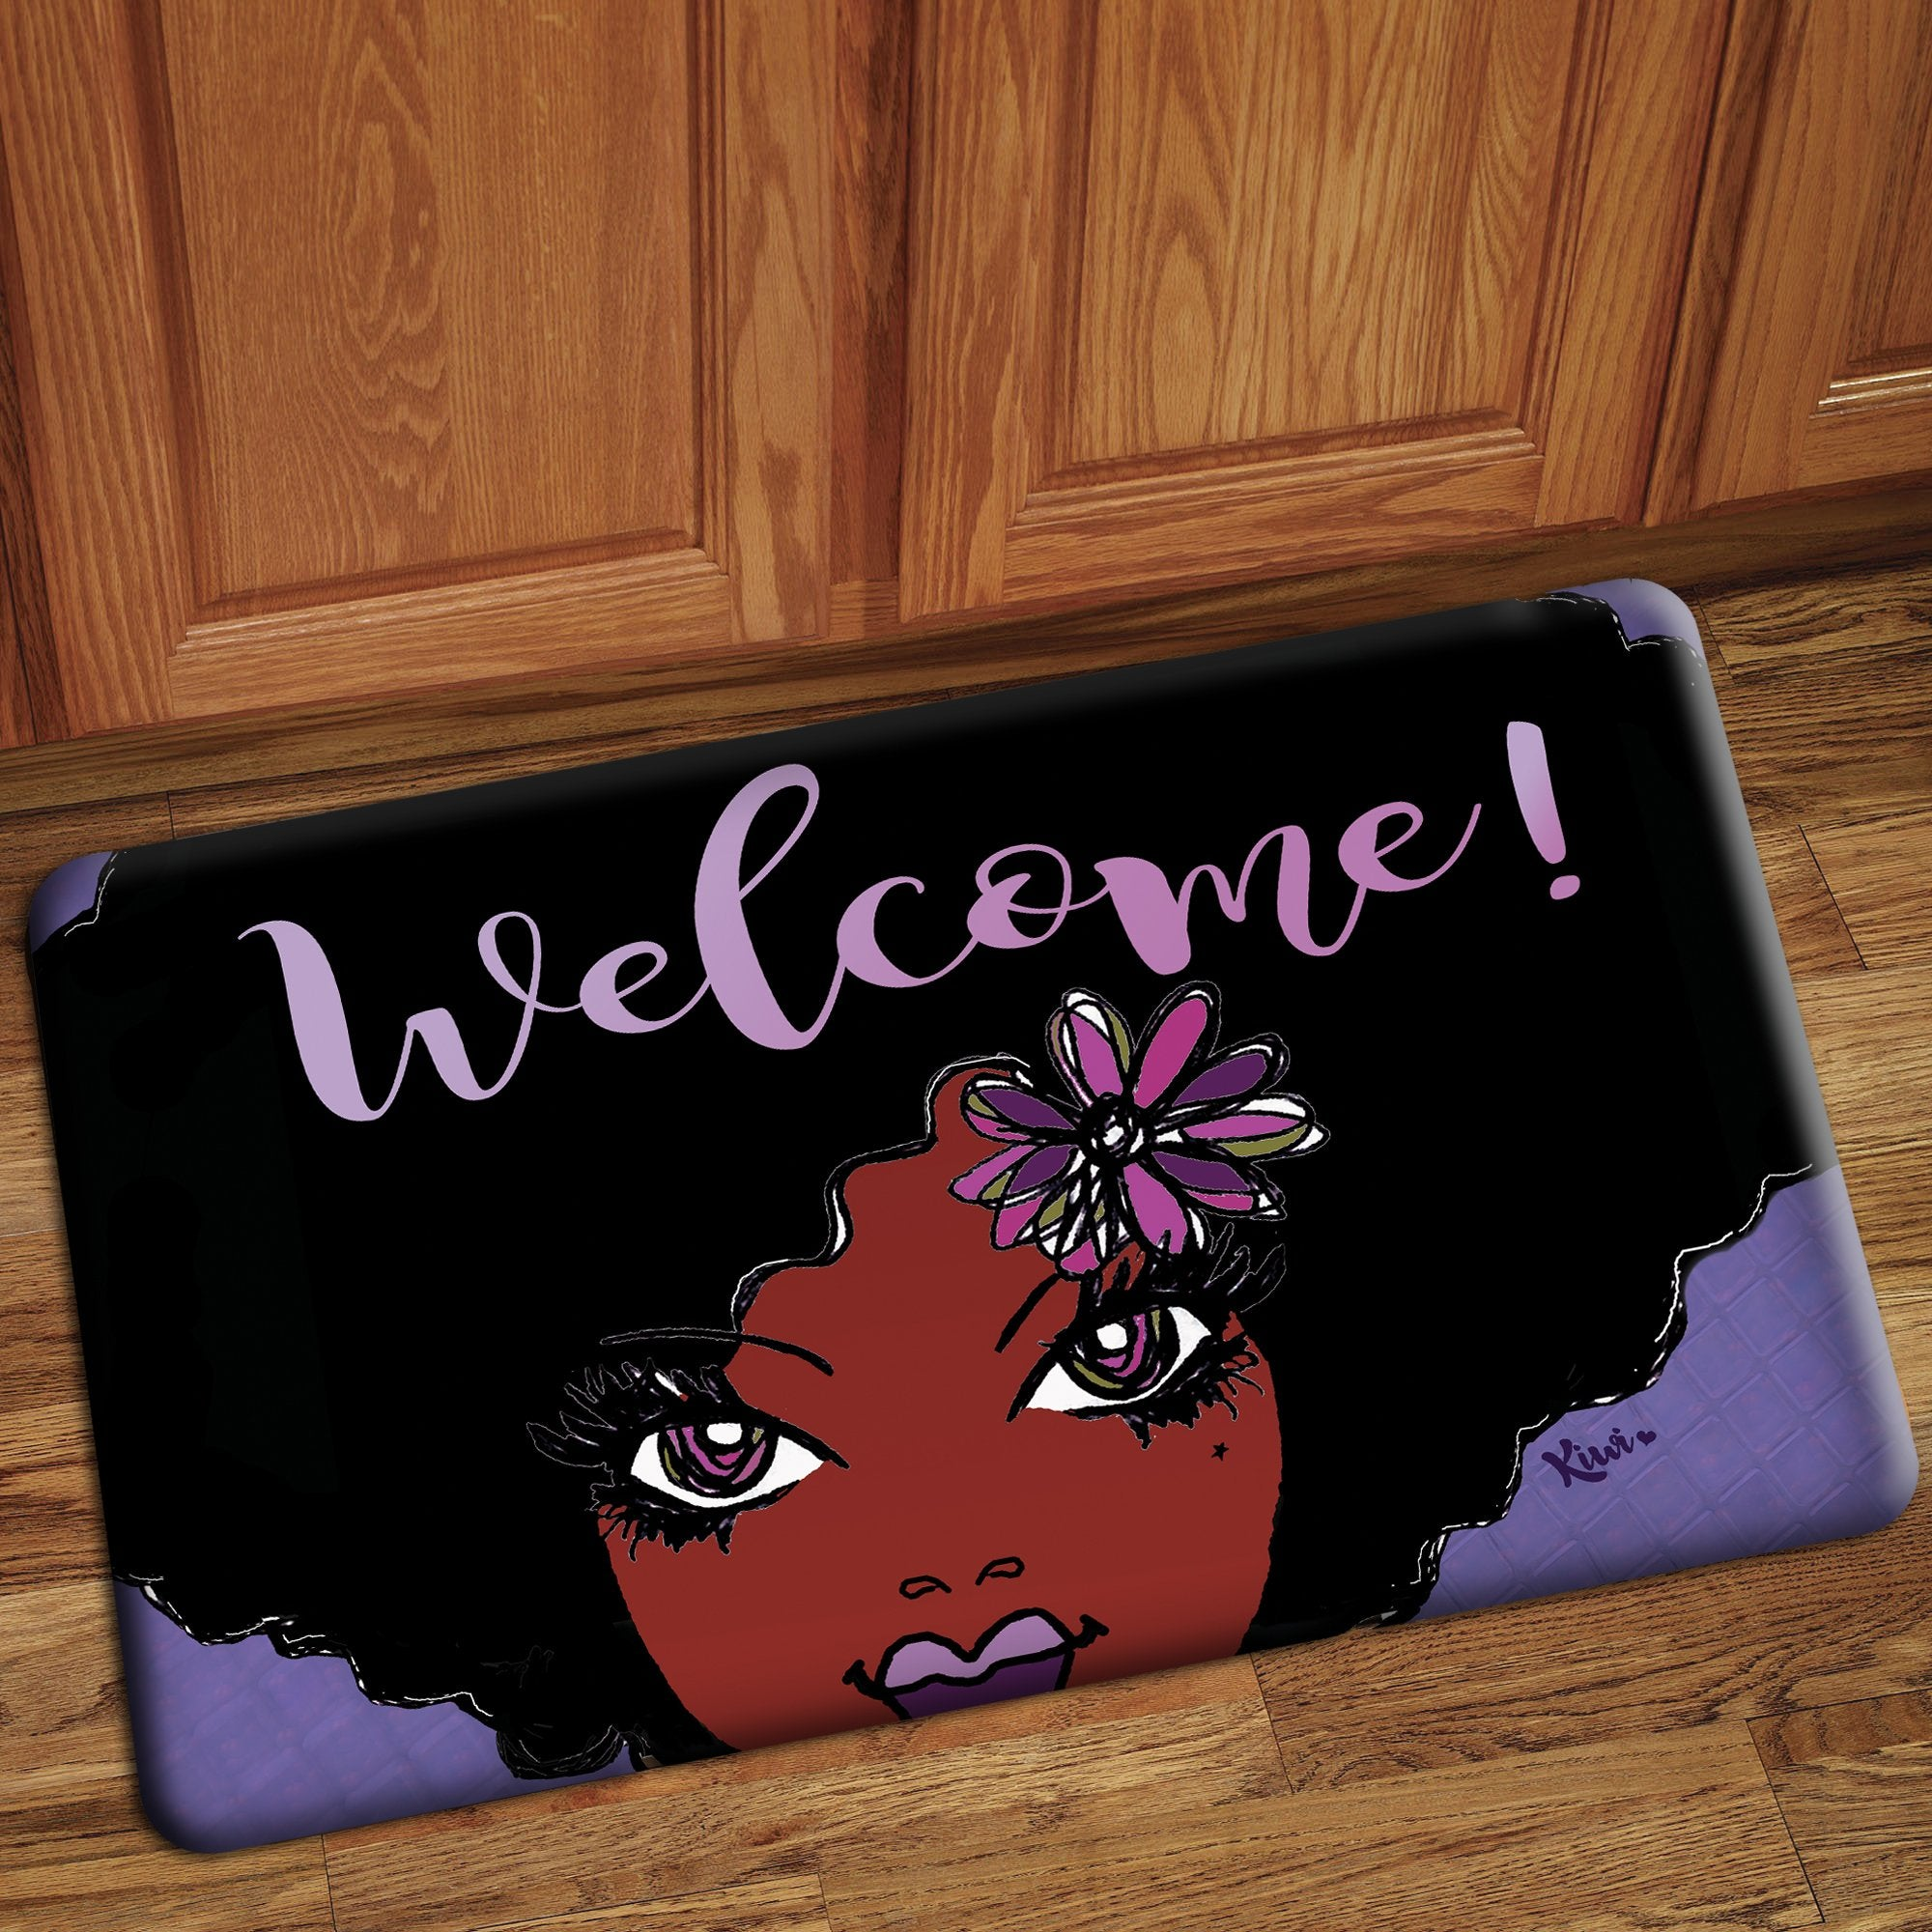 makeover r heartwork organizing mat welcome tips mini for